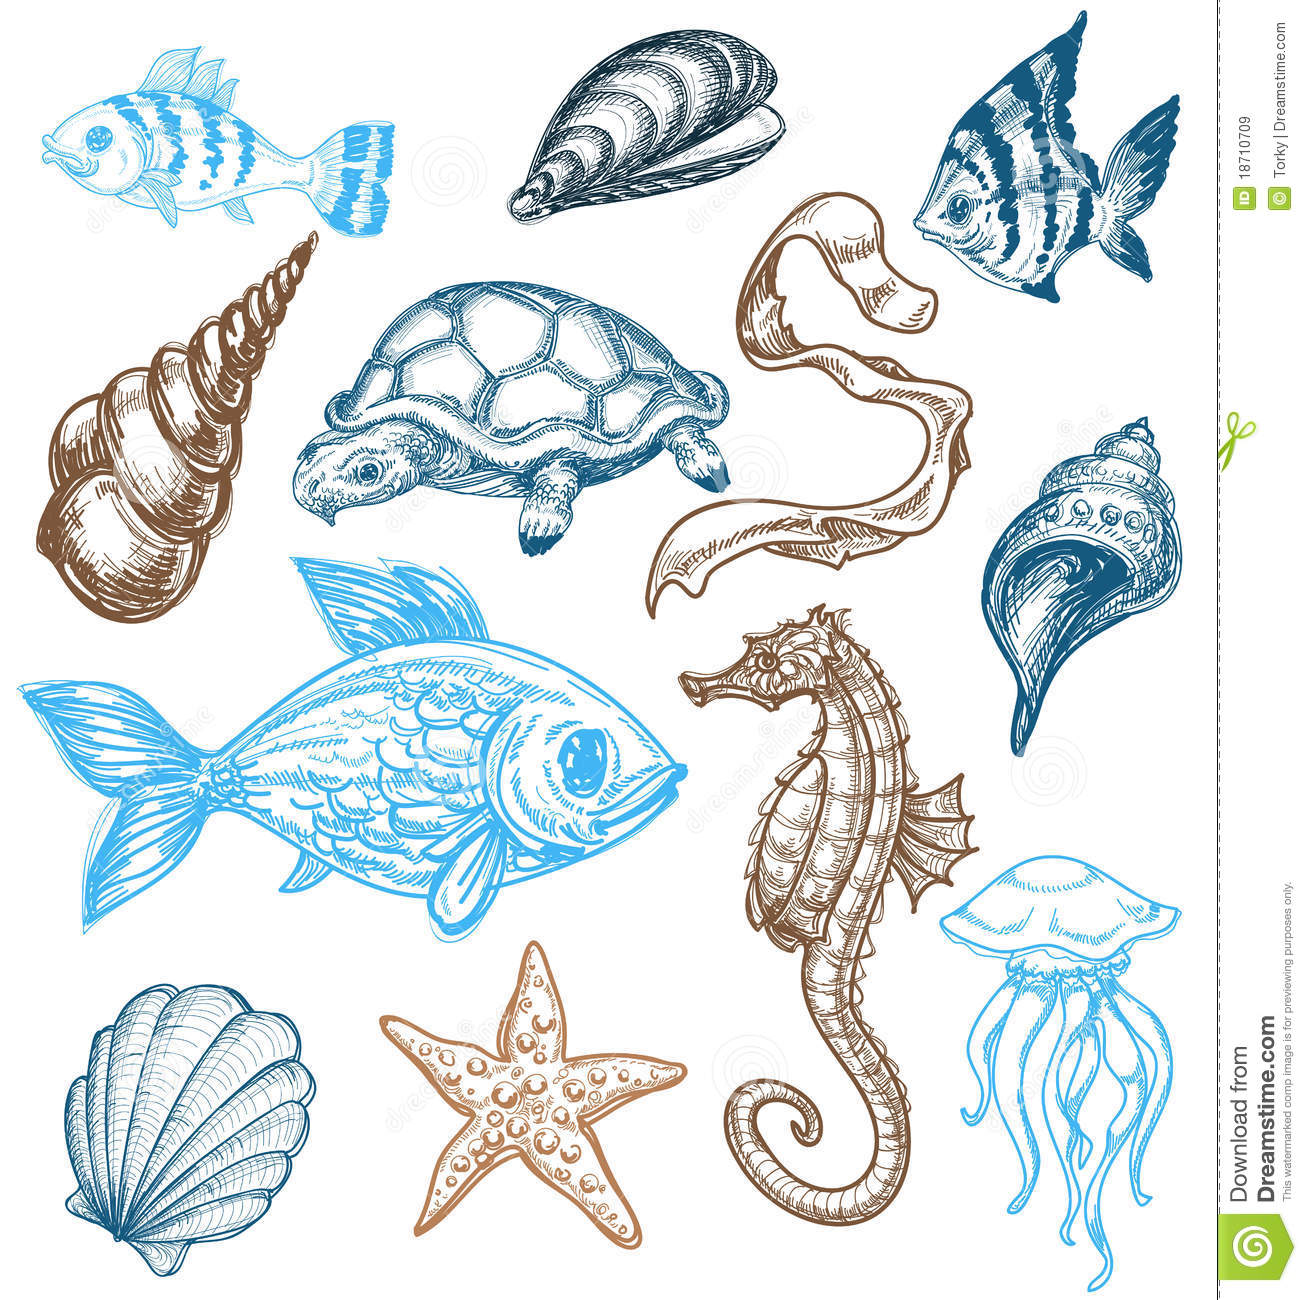 Monica Lee Does The Most Stunning Photo Realistic Drawings Weve Ever Seen further Royalty Free Stock Images Marine Life Collection Image18710709 furthermore Mood Board further 24507 7 besides 6044407426. on 3d animal drawings